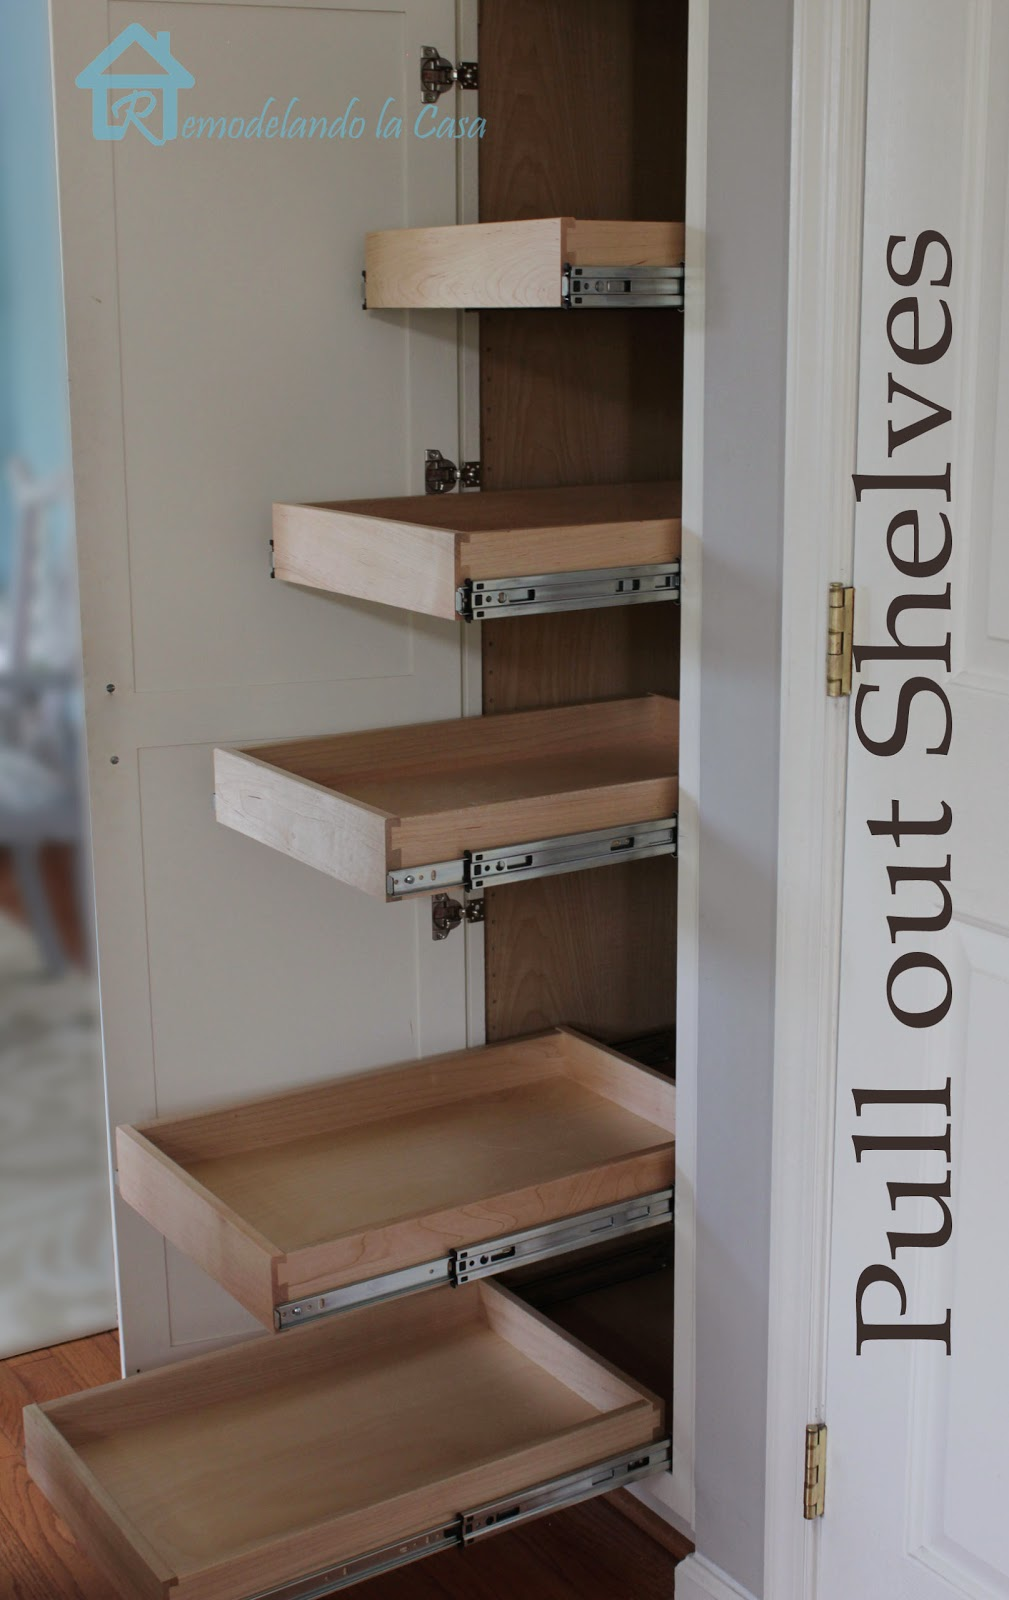 Kitchen Organization - Pull Out Shelves in Pantry ...